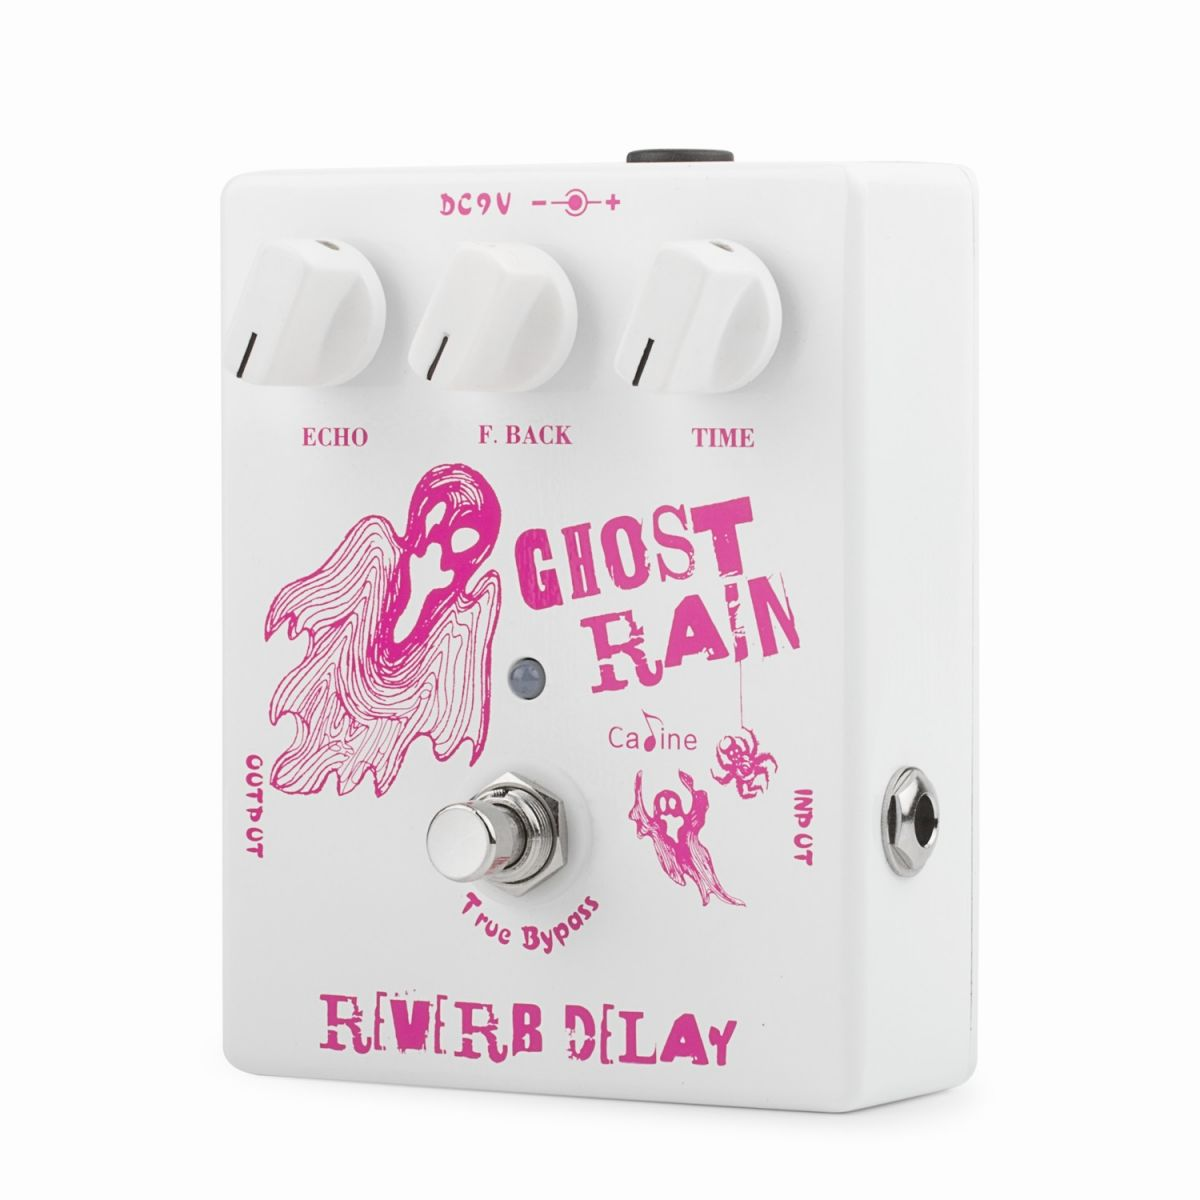 Cp-41 Ghost Rain (Delay Reverb) Caline